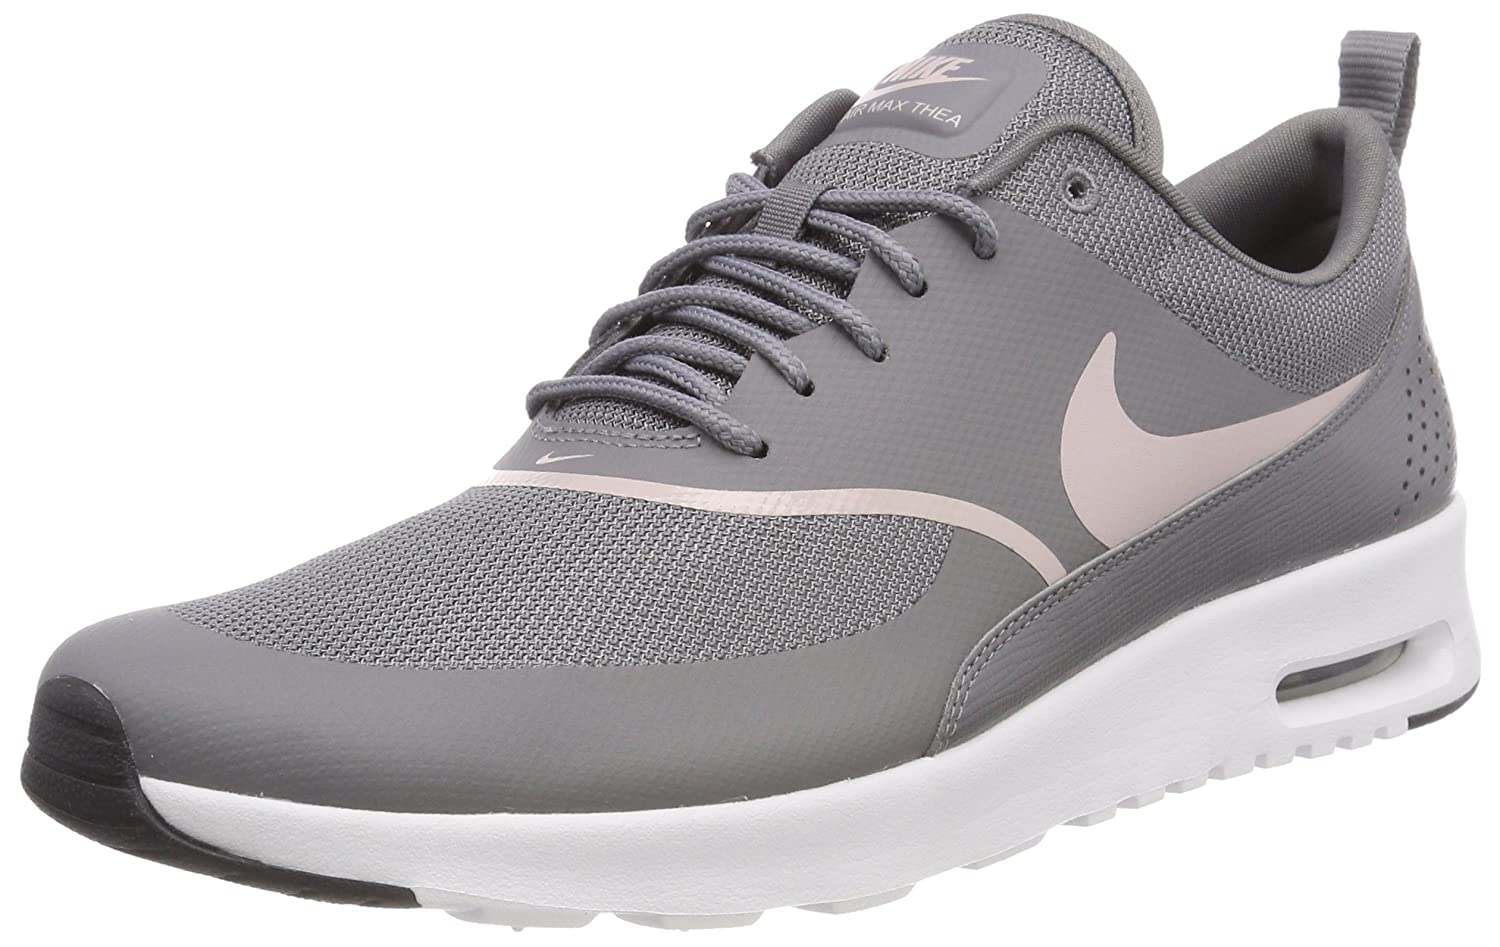 Nike Women's Air Max Thea GunsmokeParticle Rose Black Running Shoe 7.5 Women US